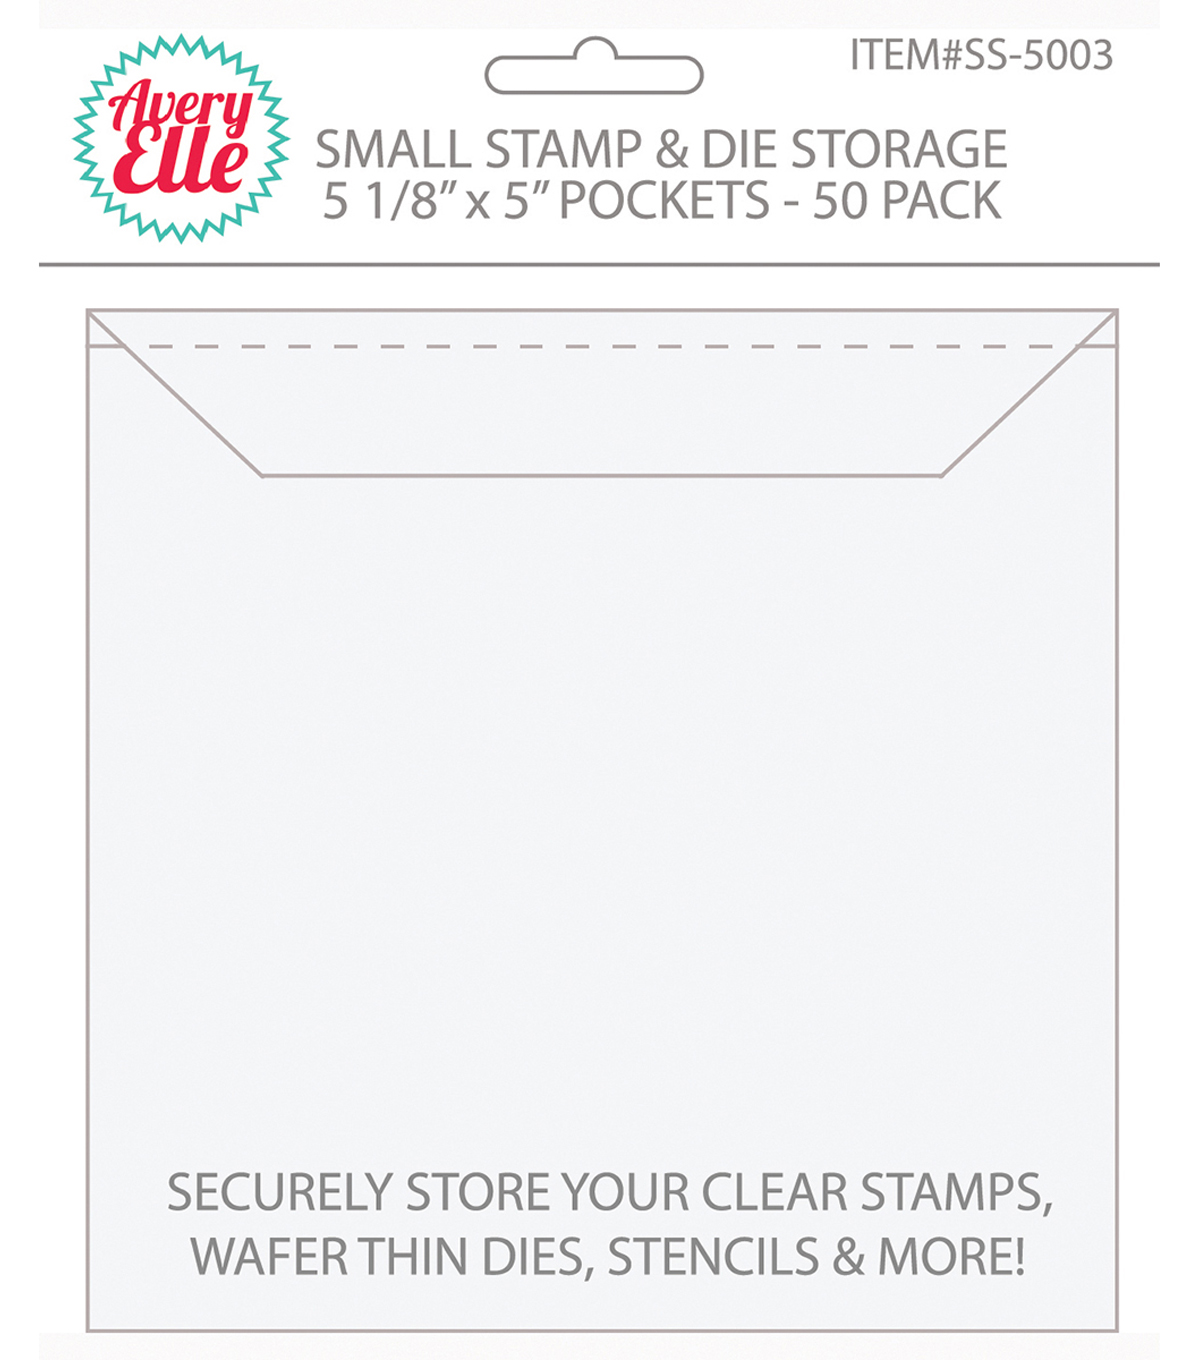 Avery Elle Stamp & Die Small Storage Pockets 50 Pack